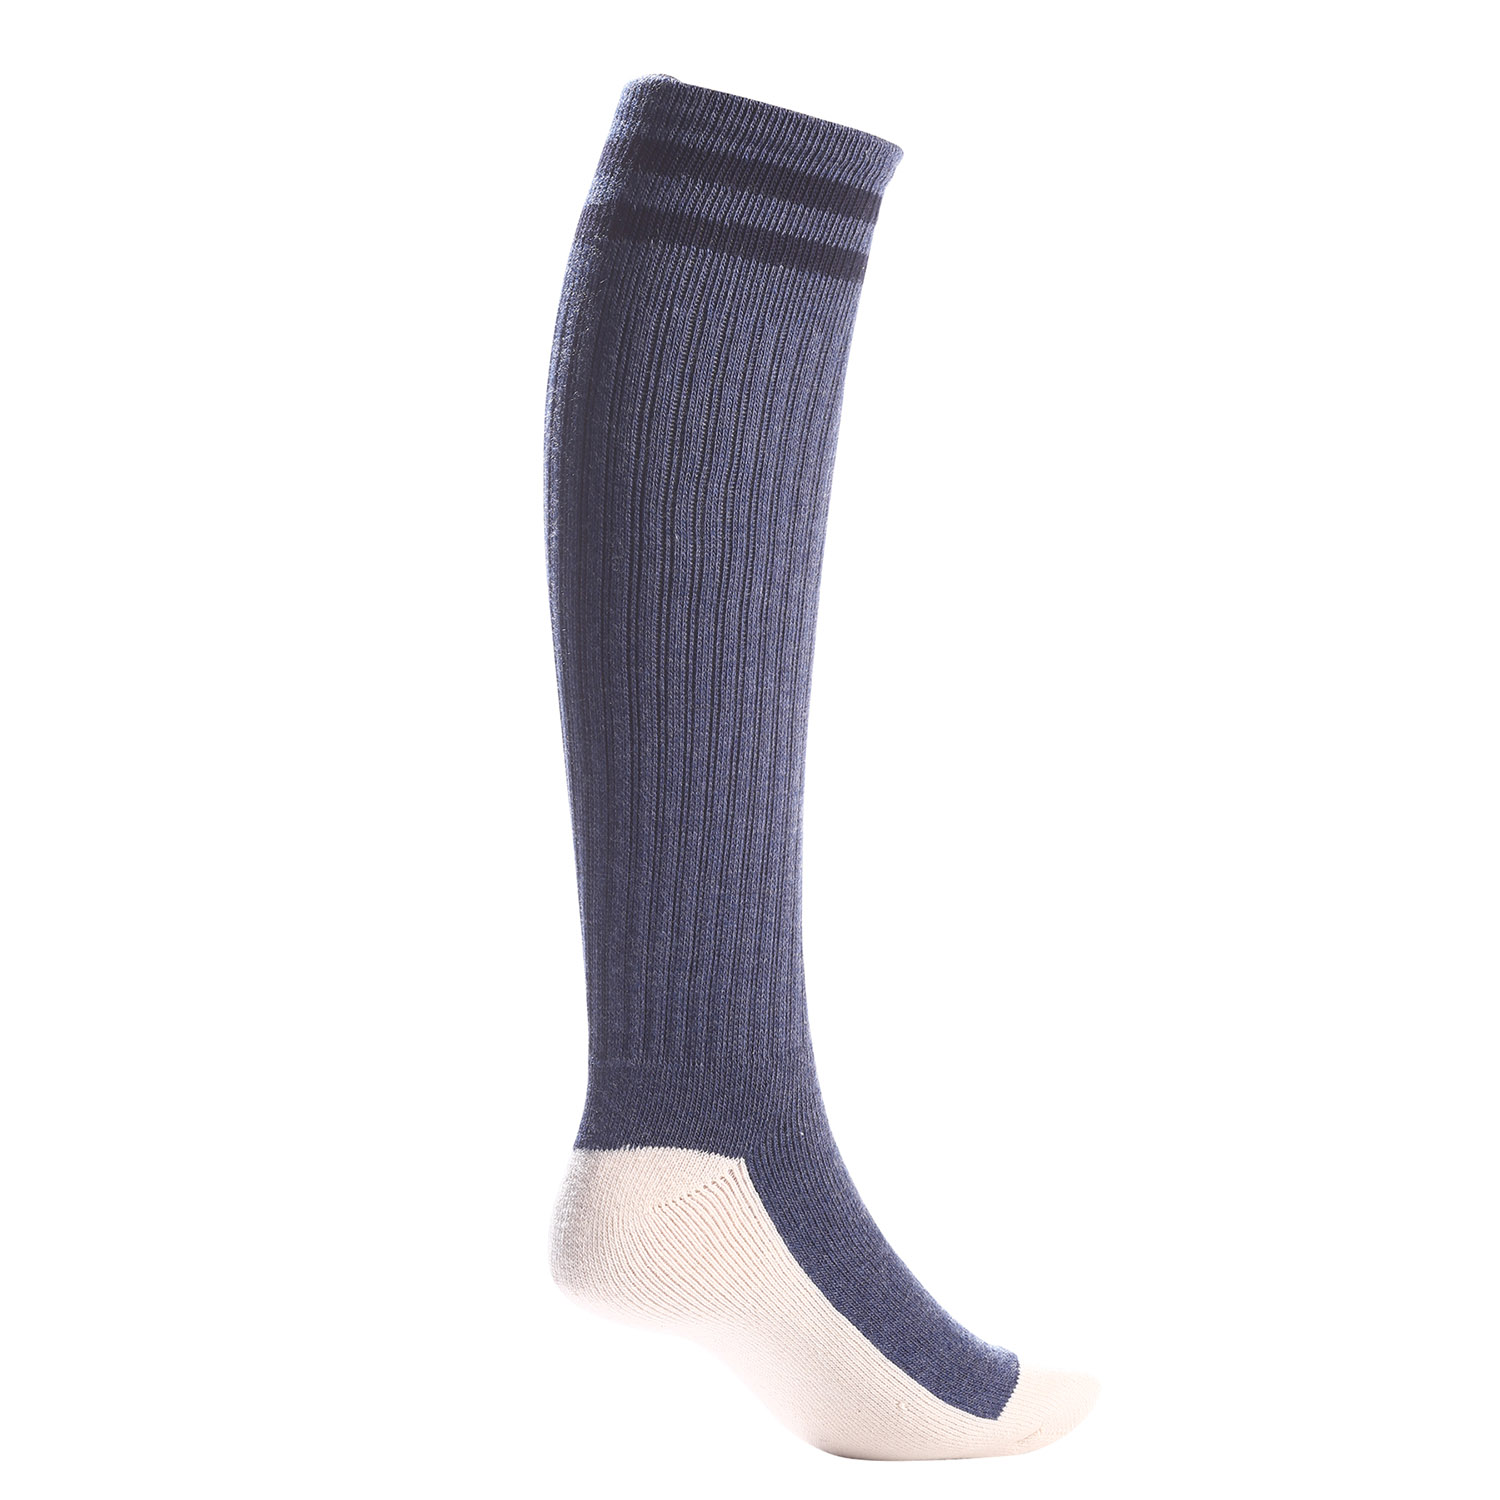 Pro Feet Postal Approved Cushioned Over-The-Calf Health Sock